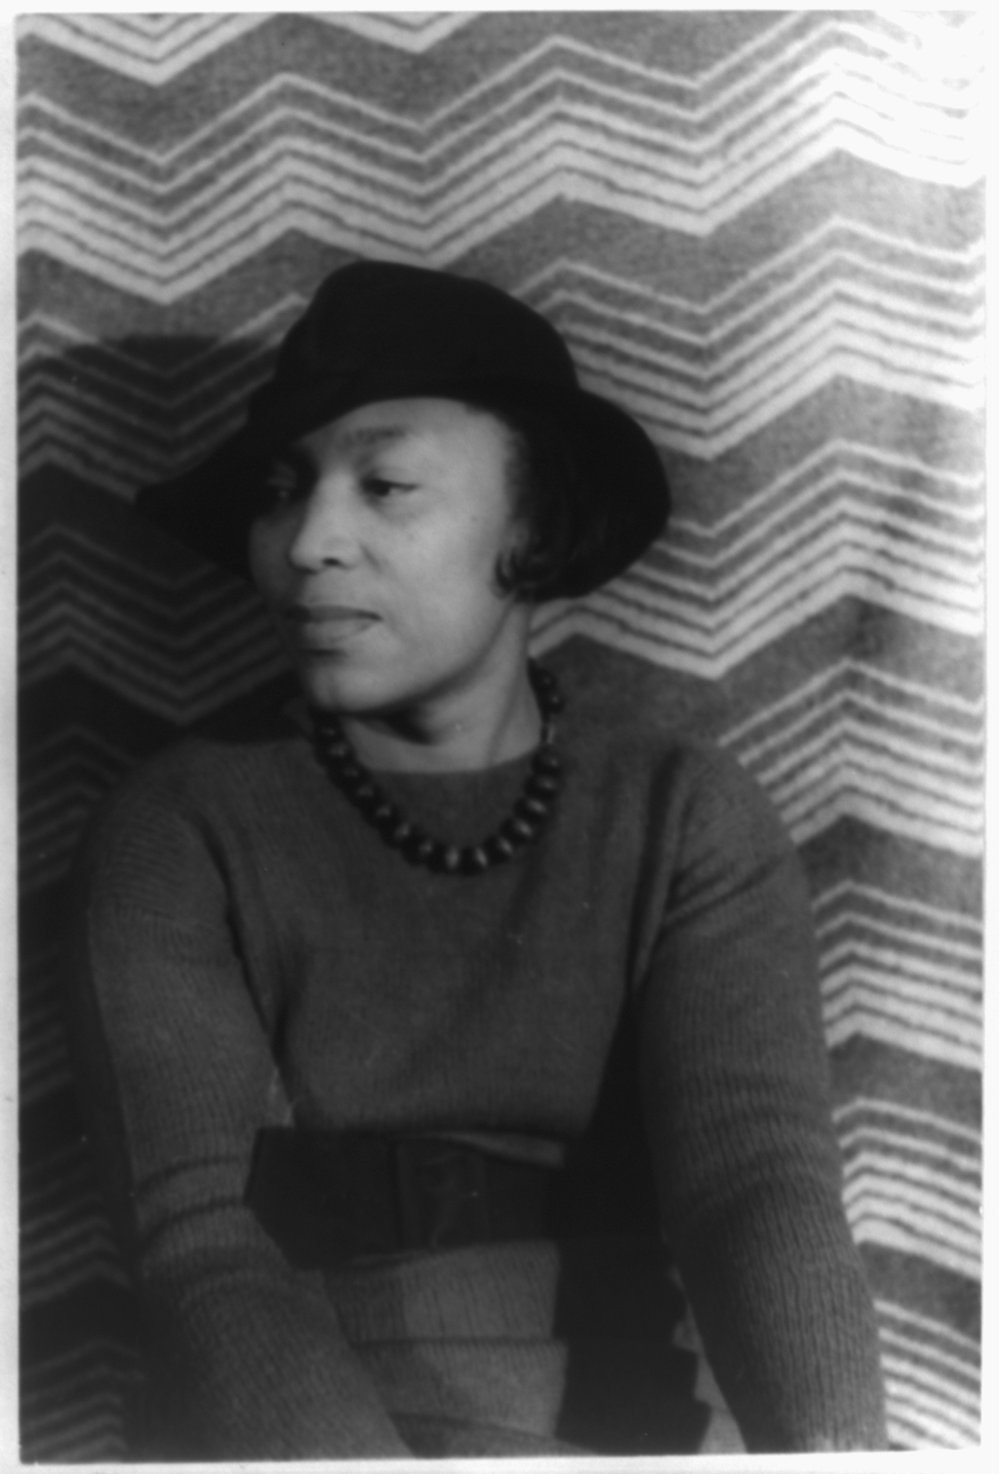 Portrait of Zora Neale Hurston by Carl Van Vechten, 3 April 1938, via Library of Congress.